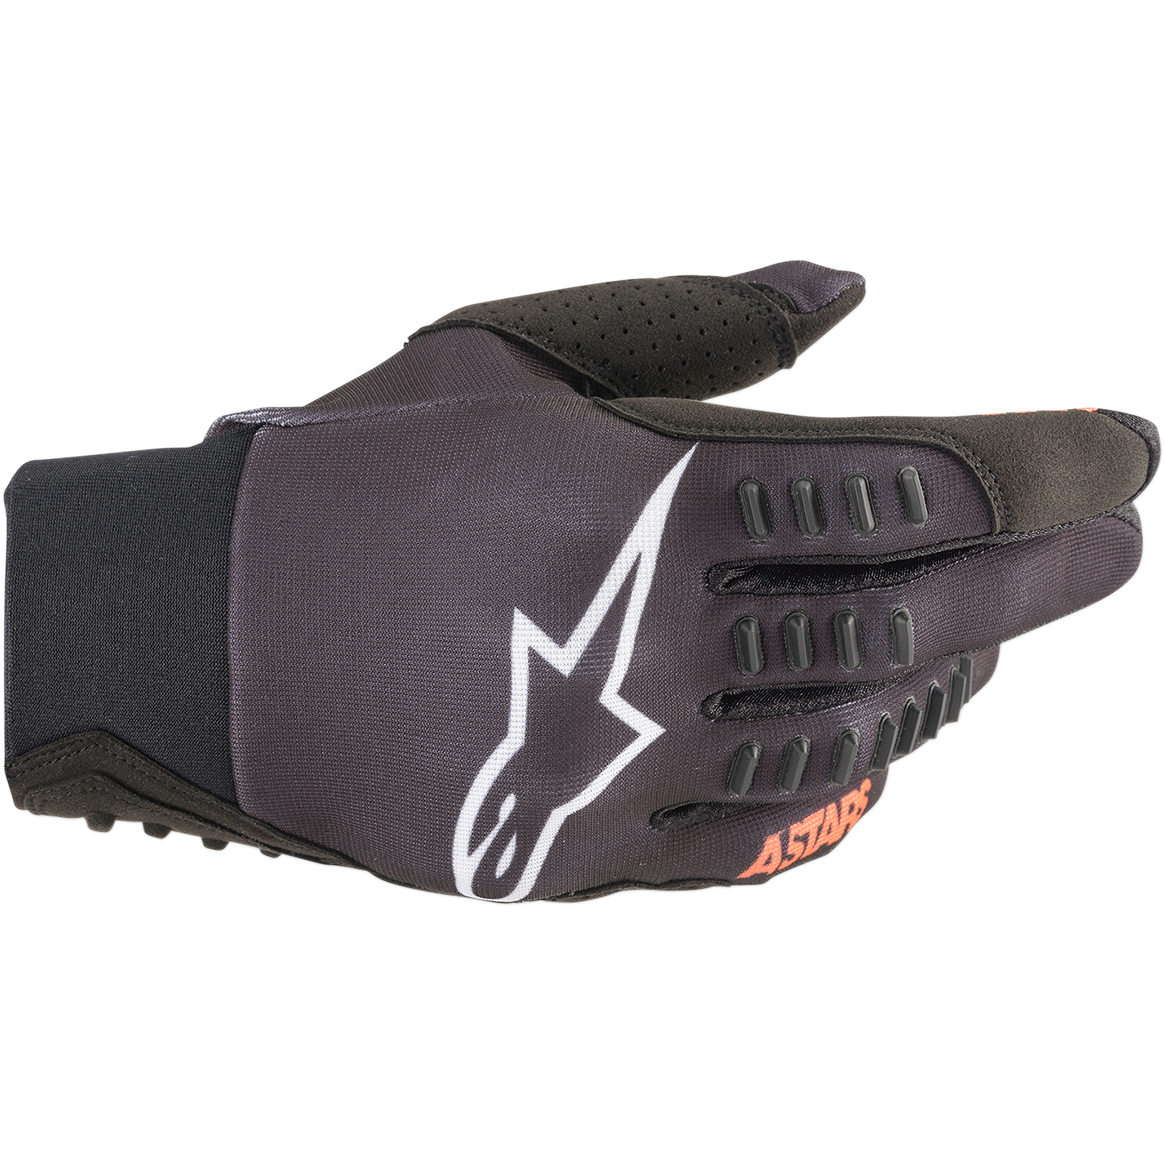 2020 SMX-E Offroad Gloves